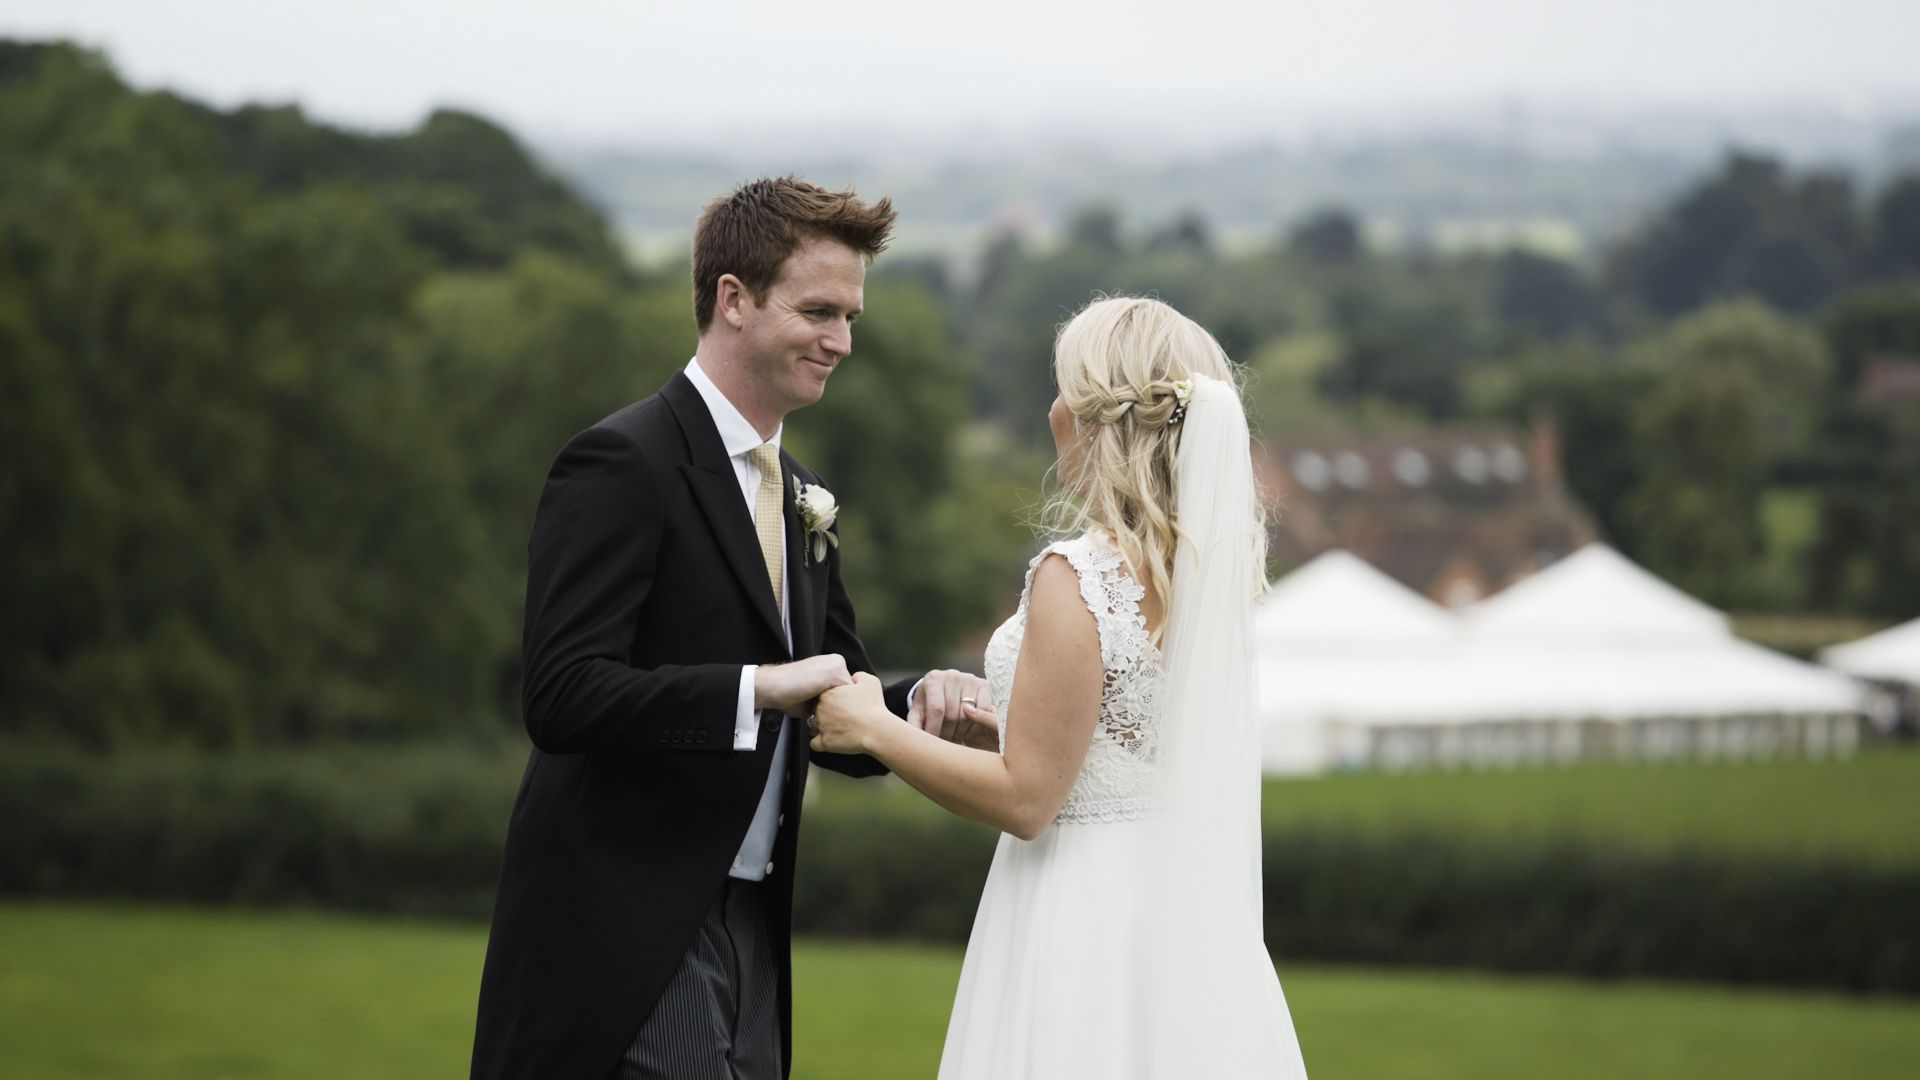 North cadbury court somerset wedding video contact us about filming